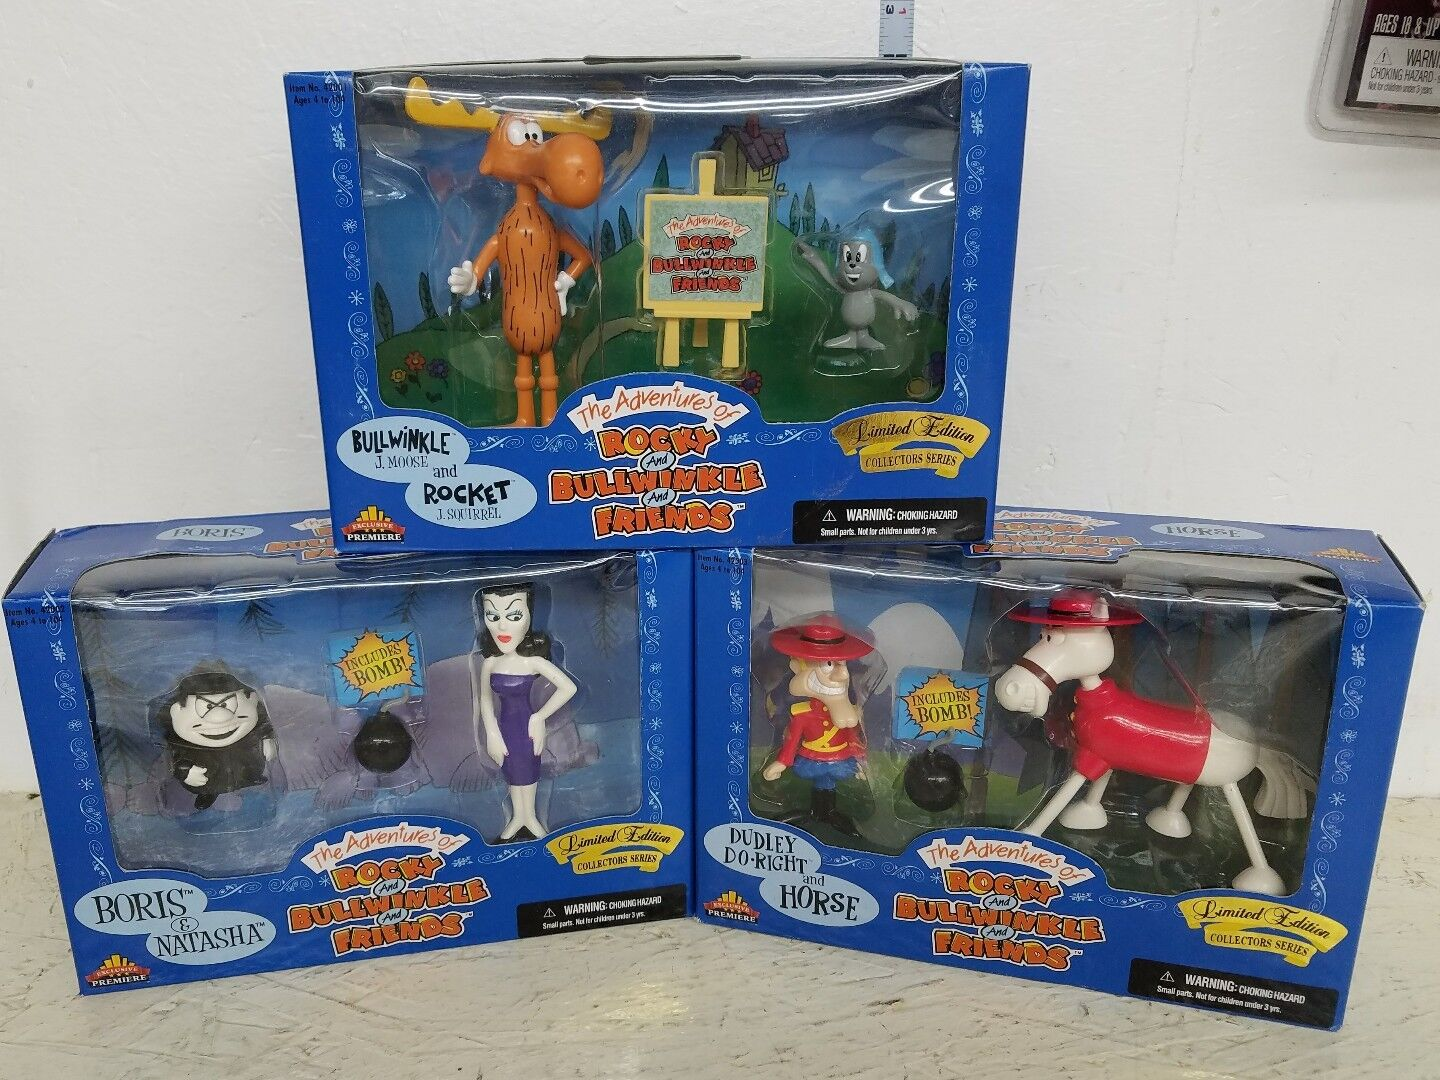 Rocky and Bullwinkle Action Figure set Dudley and Horse Boris Natasha